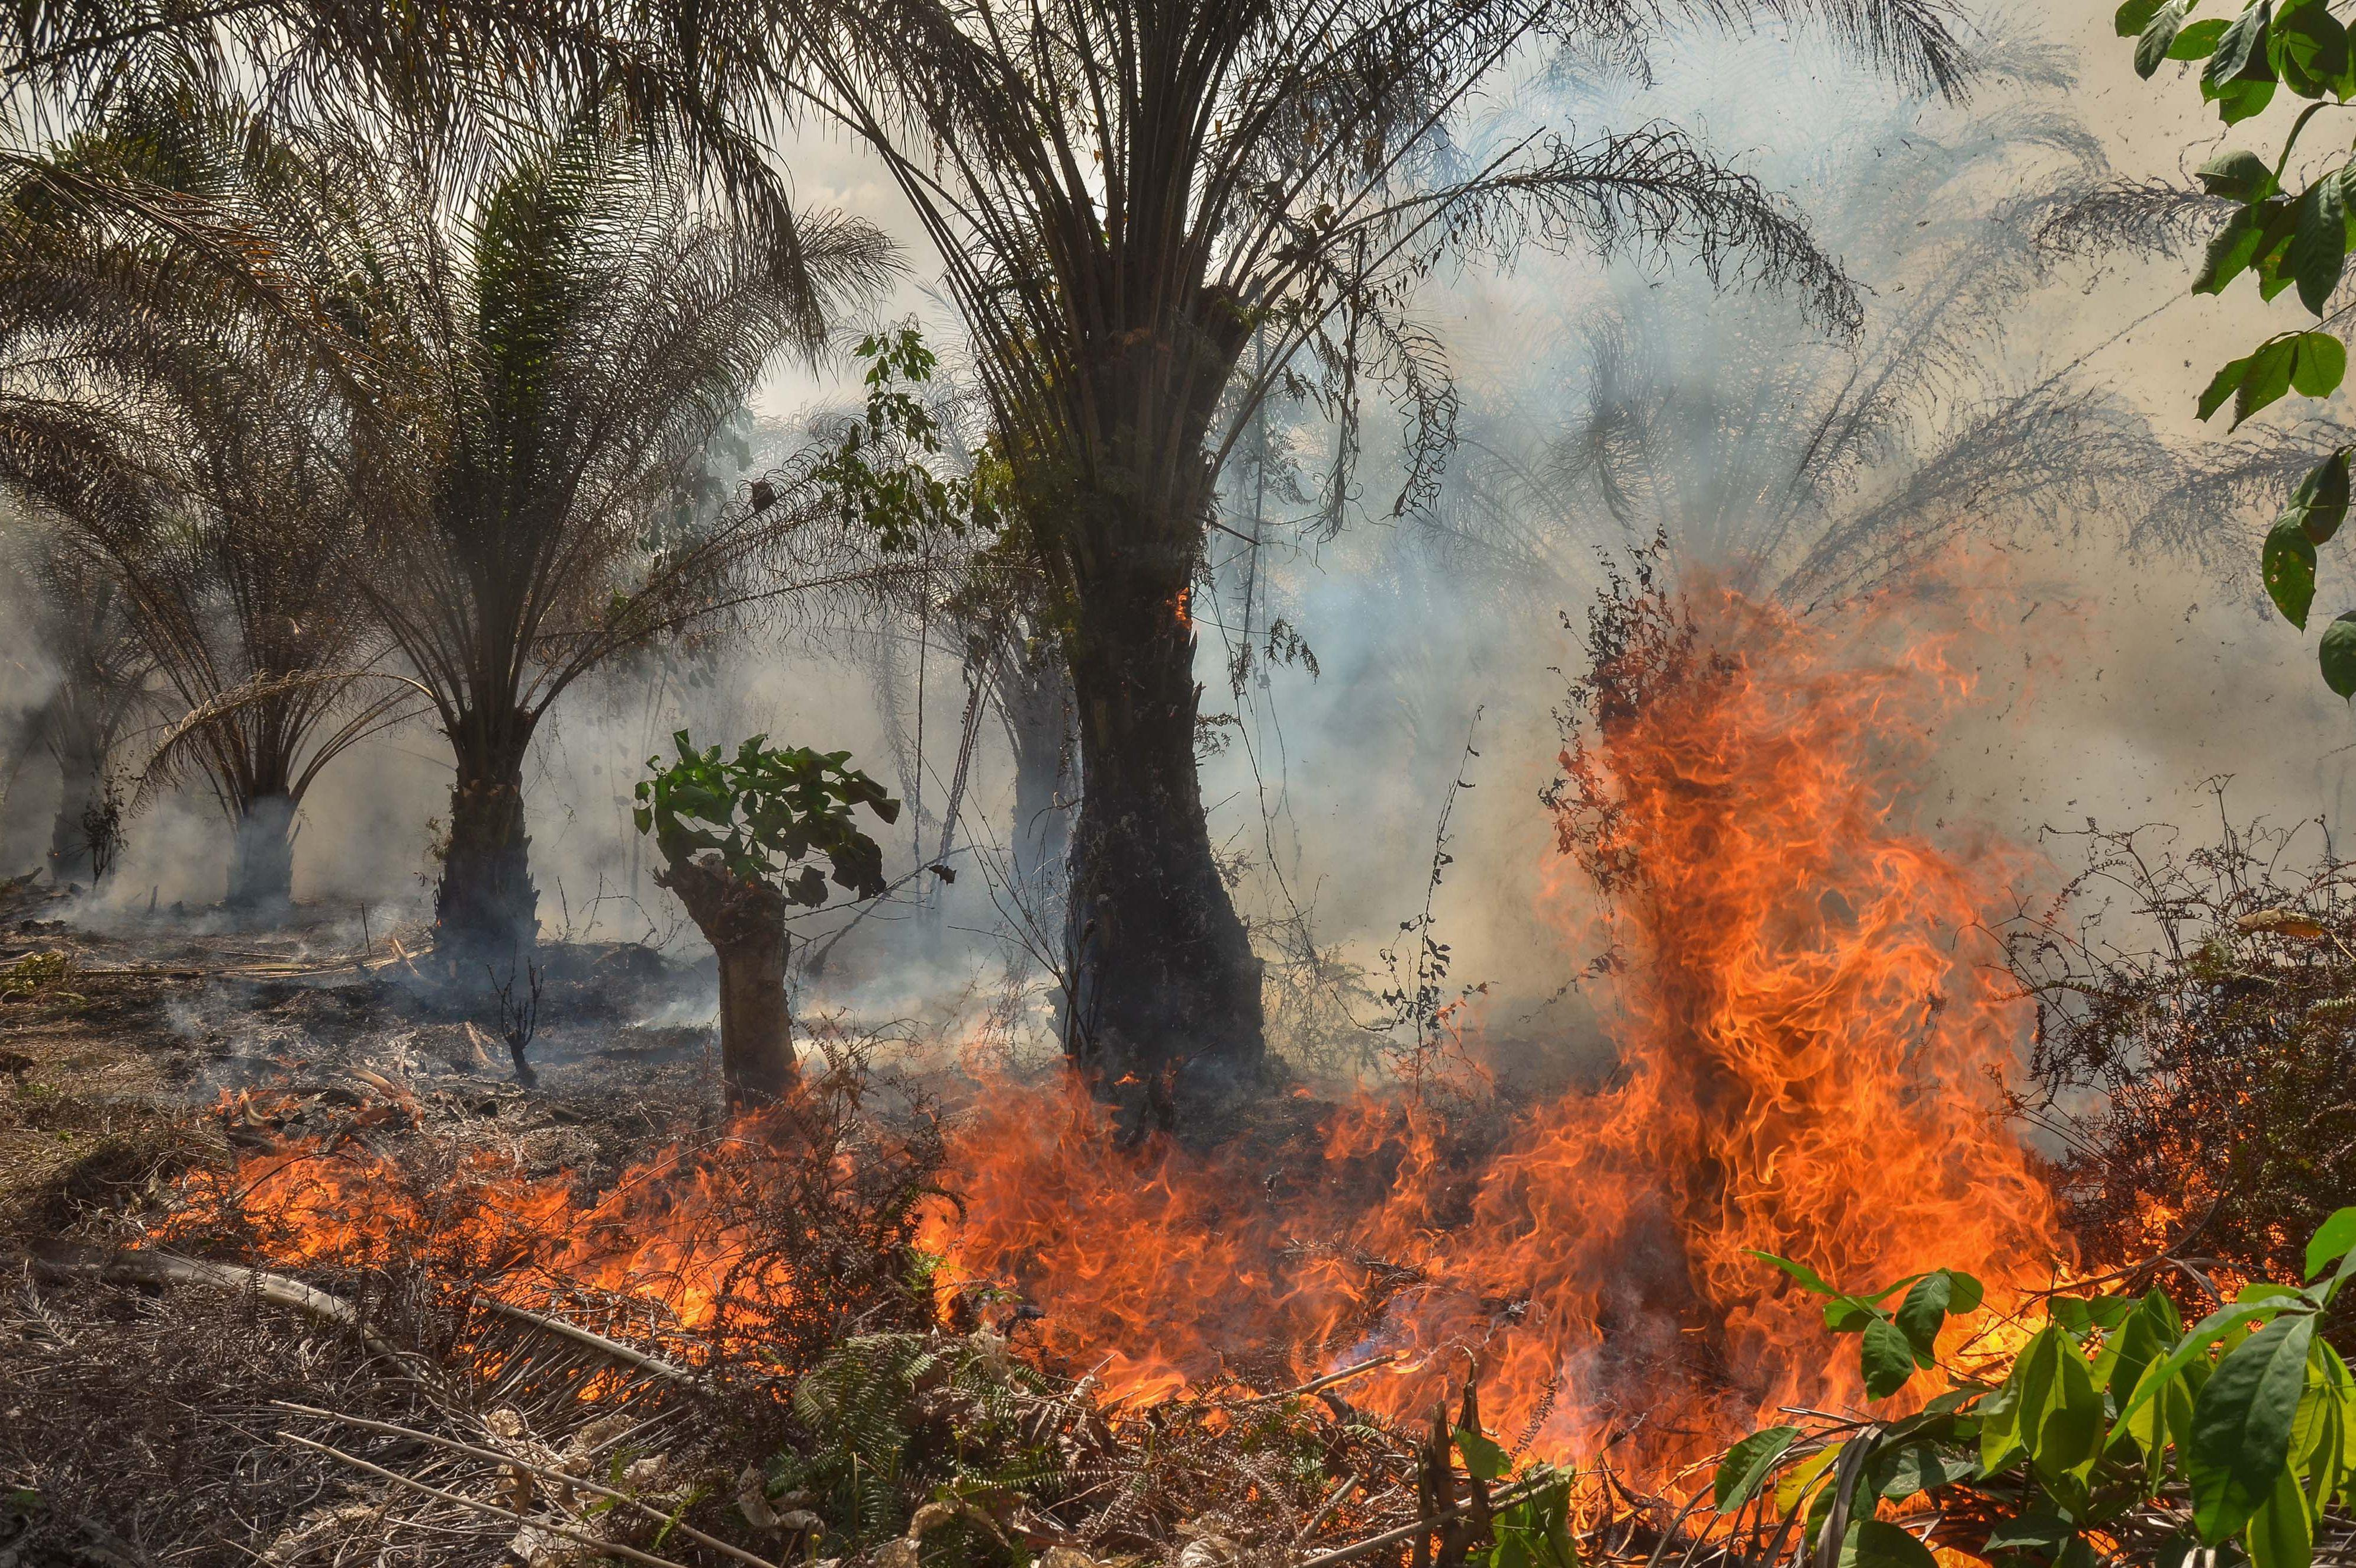 INDONESIA-ENVIRONMENT-FIRE